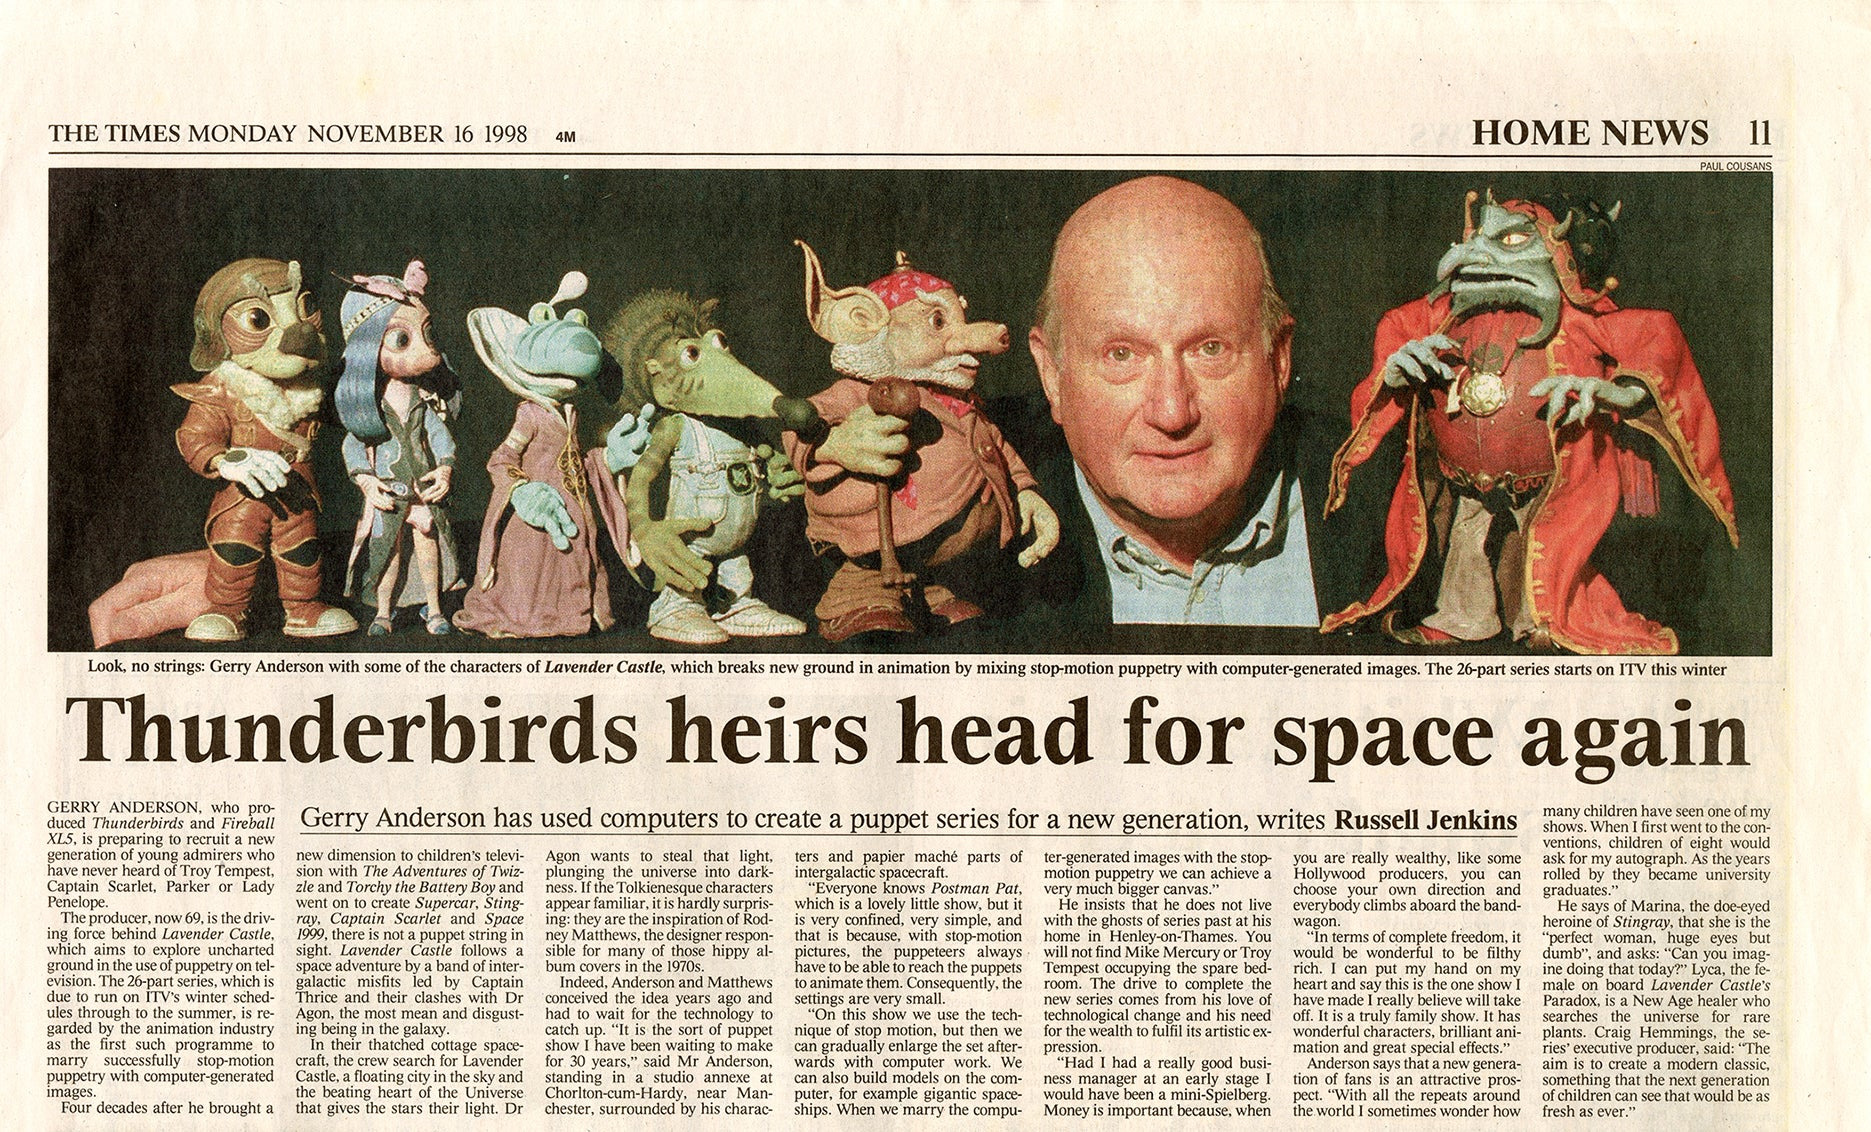 Gerry Anderson speaks Lavender Castle in The Times